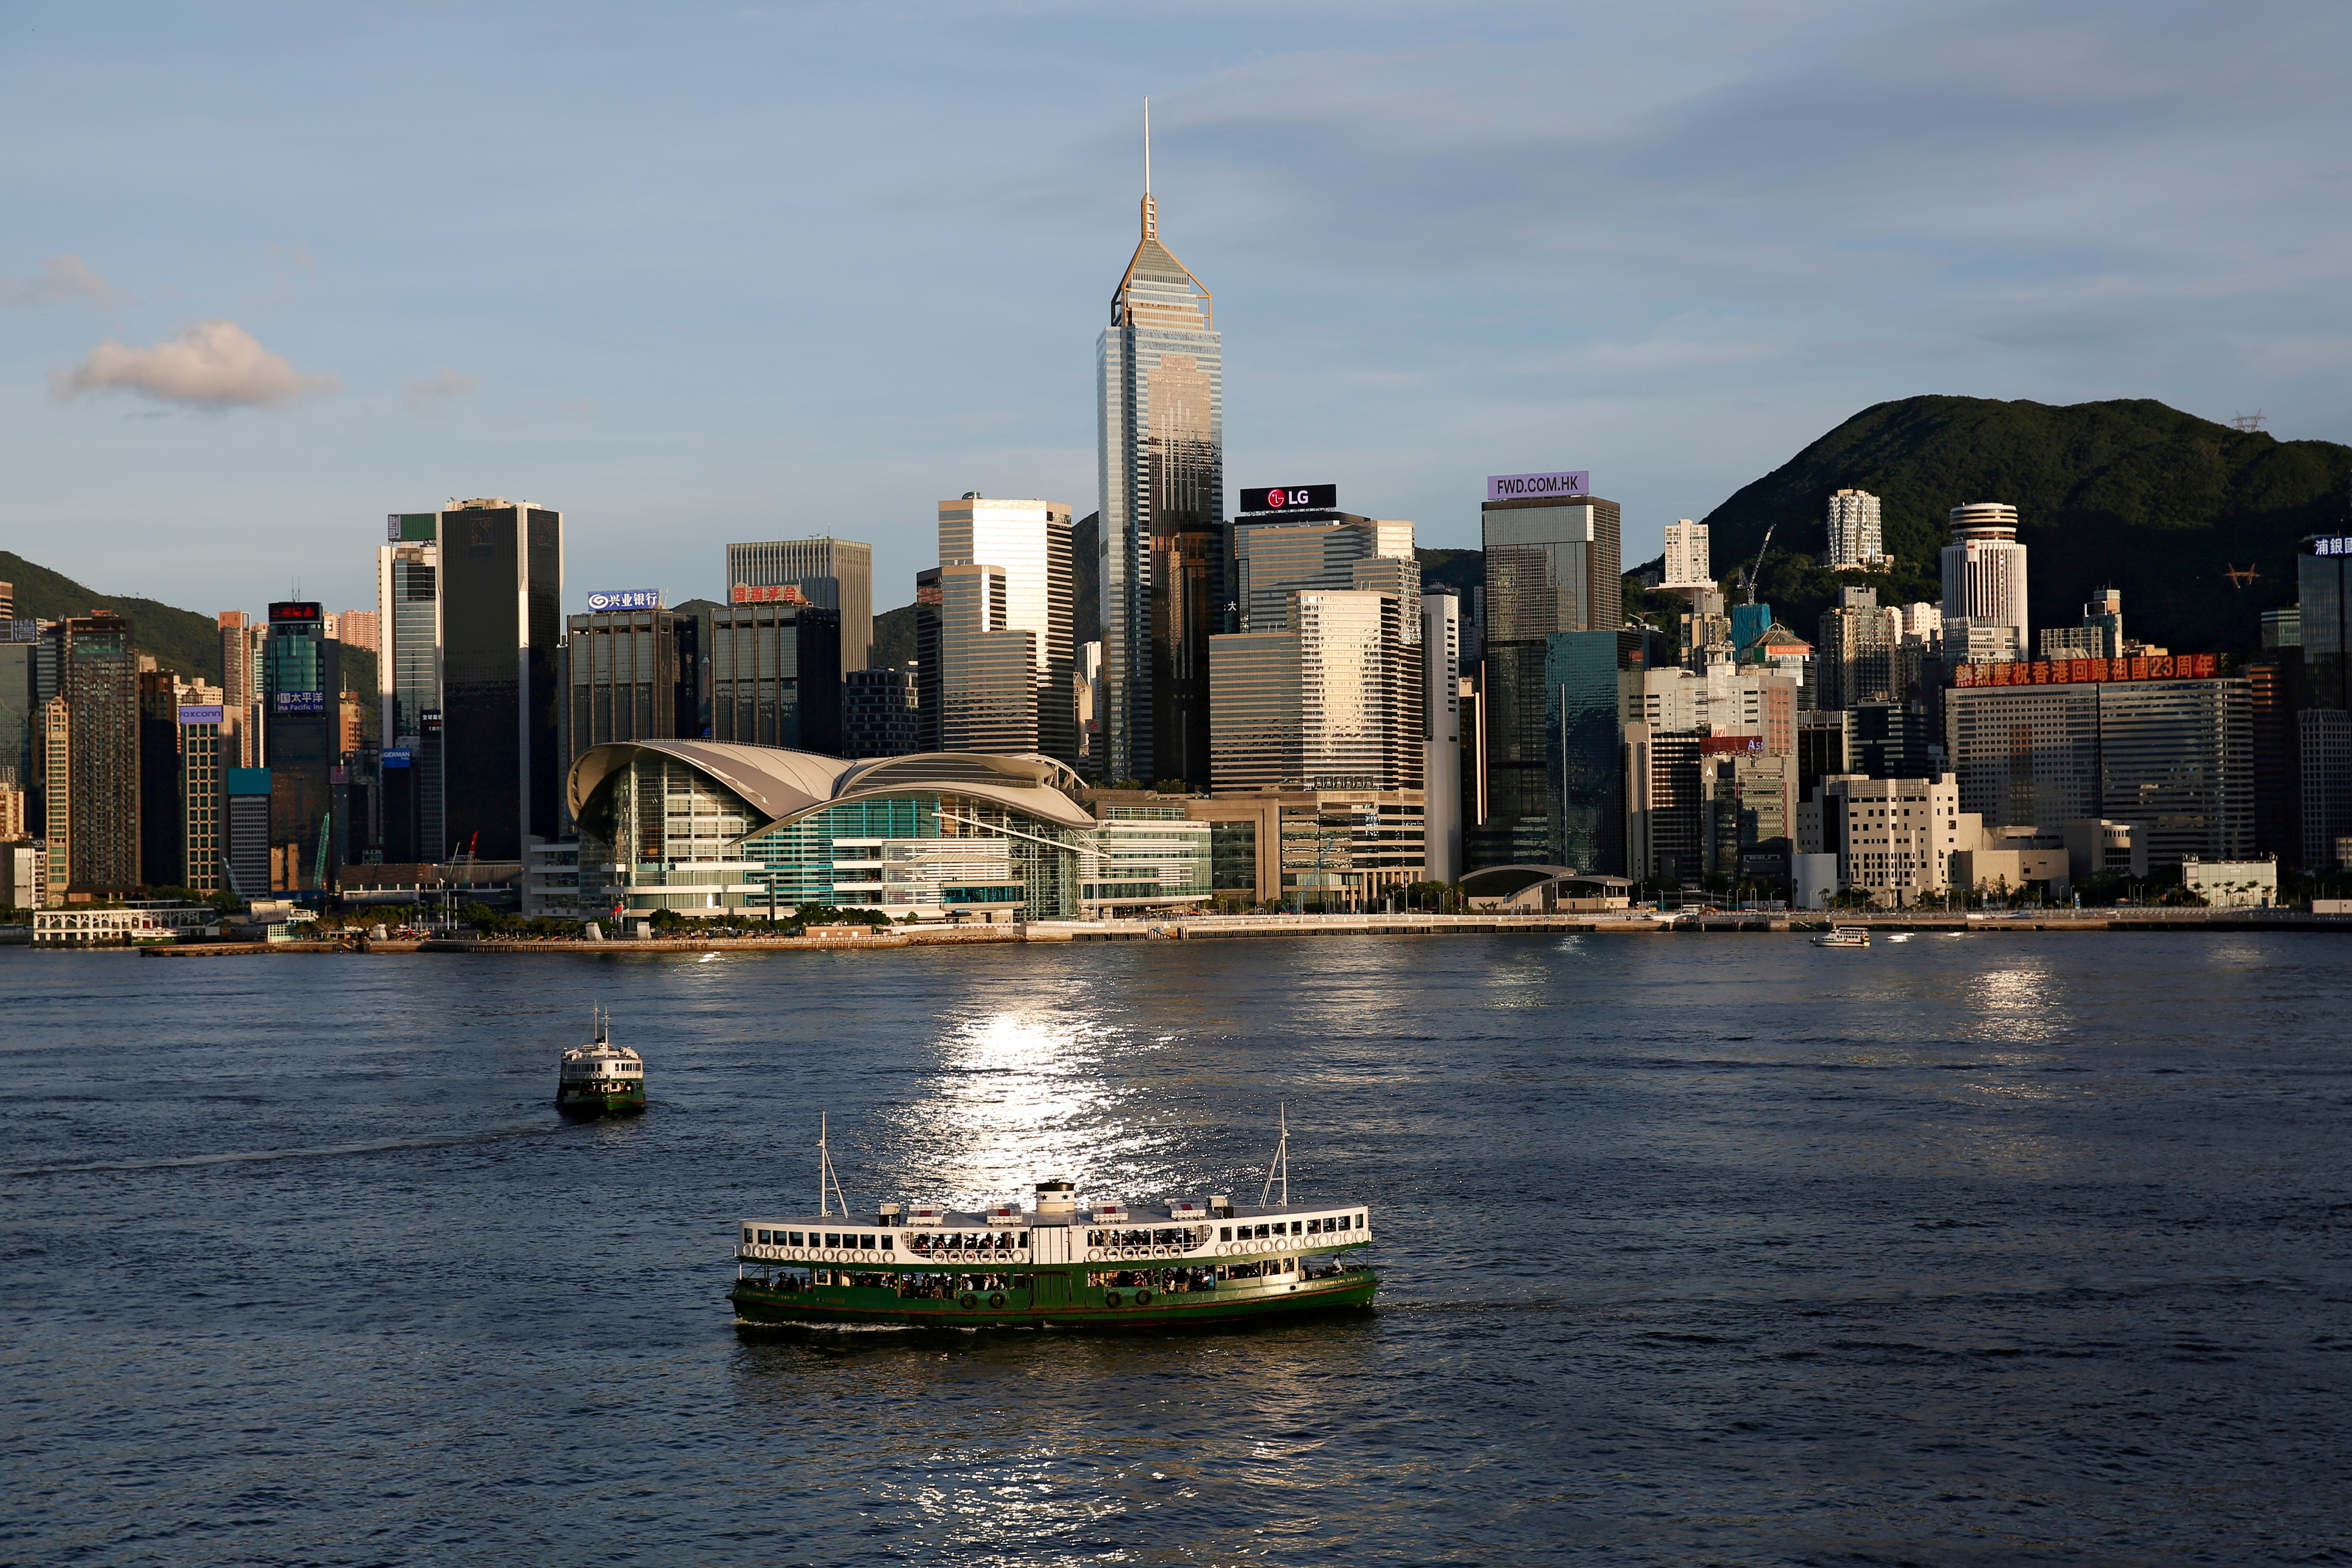 A Star Ferry boat crosses Victoria Harbour in front of a skyline of buildings in Hong Kong, China June 29, 2020. REUTERS/Tyrone Siu